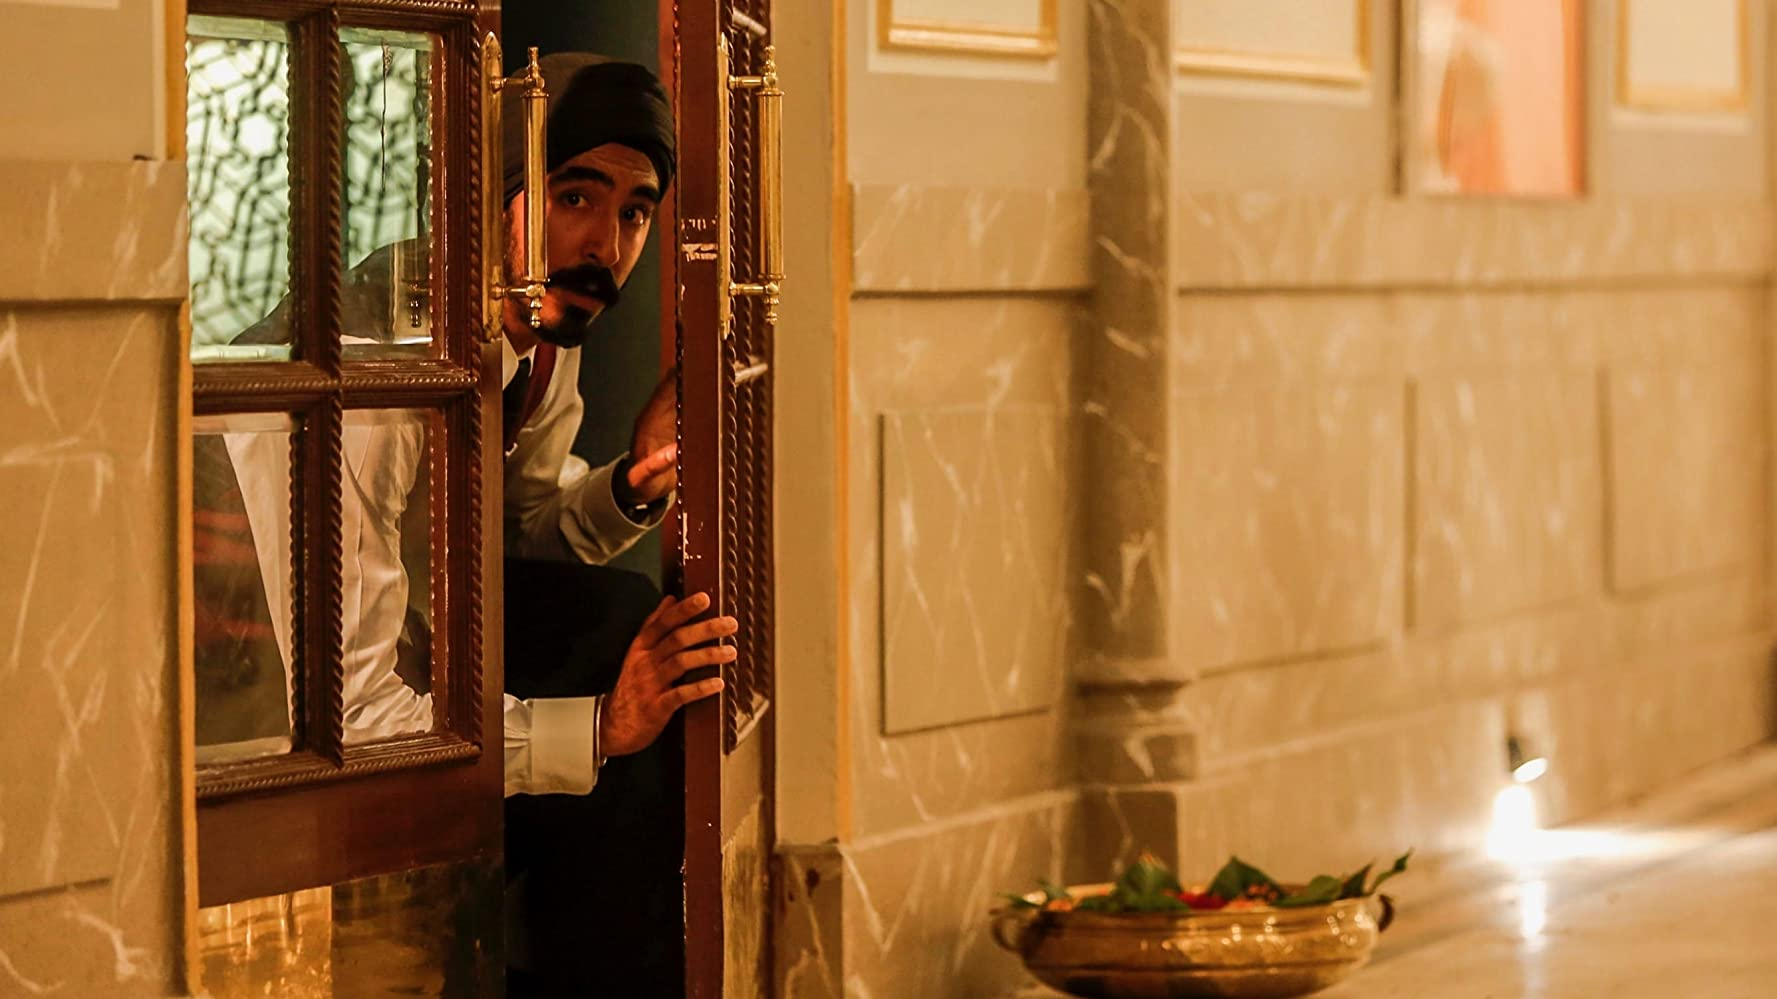 Dev Patel in Hotel Mumbai (2018)